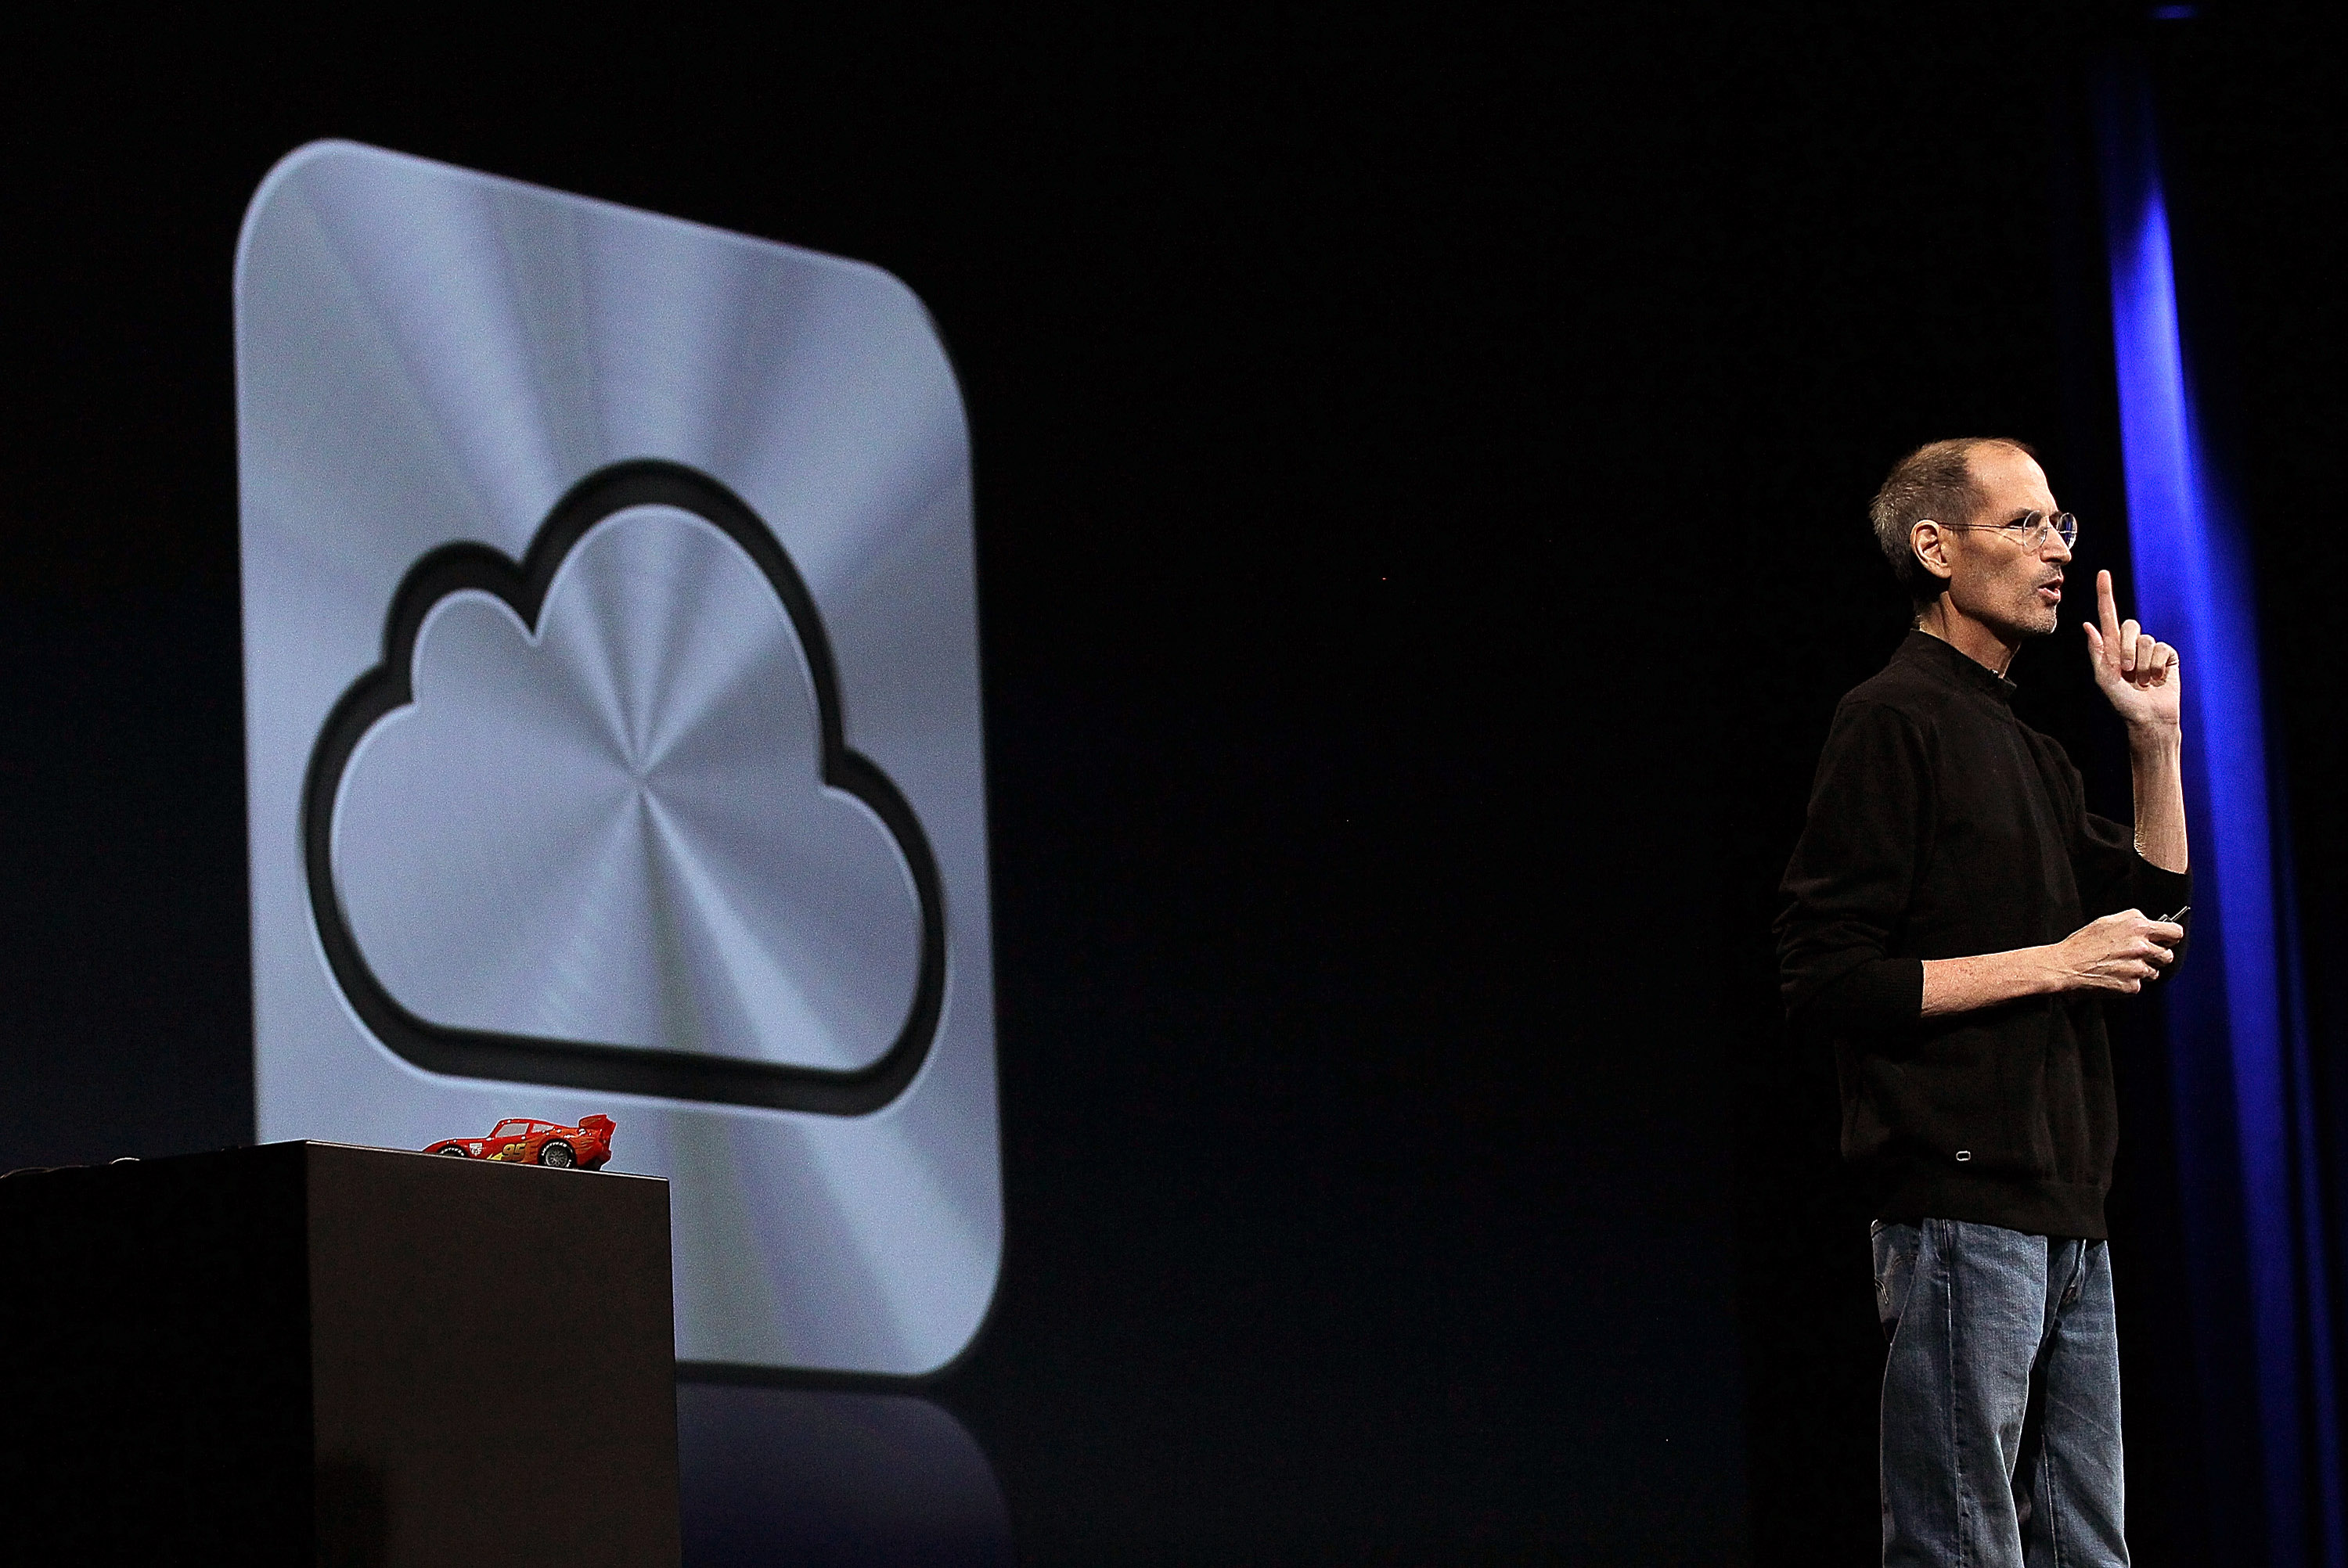 2011: Year of the iCloud